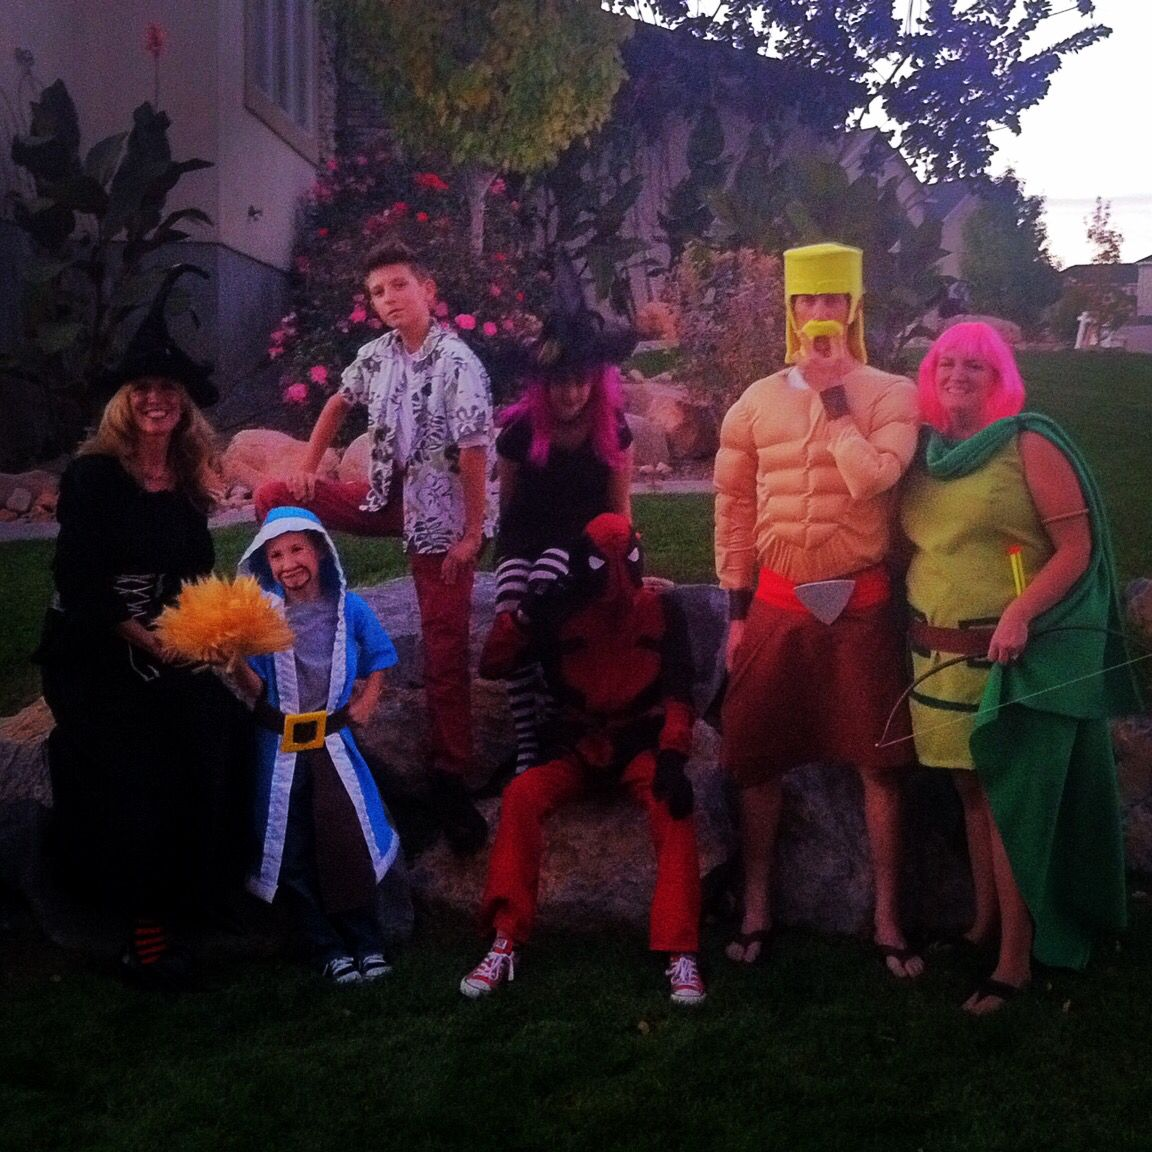 a barbarian an archer and wizard from the clash of clans with a few witches deadpool and ace ventura - Ace Ventura Halloween Costumes